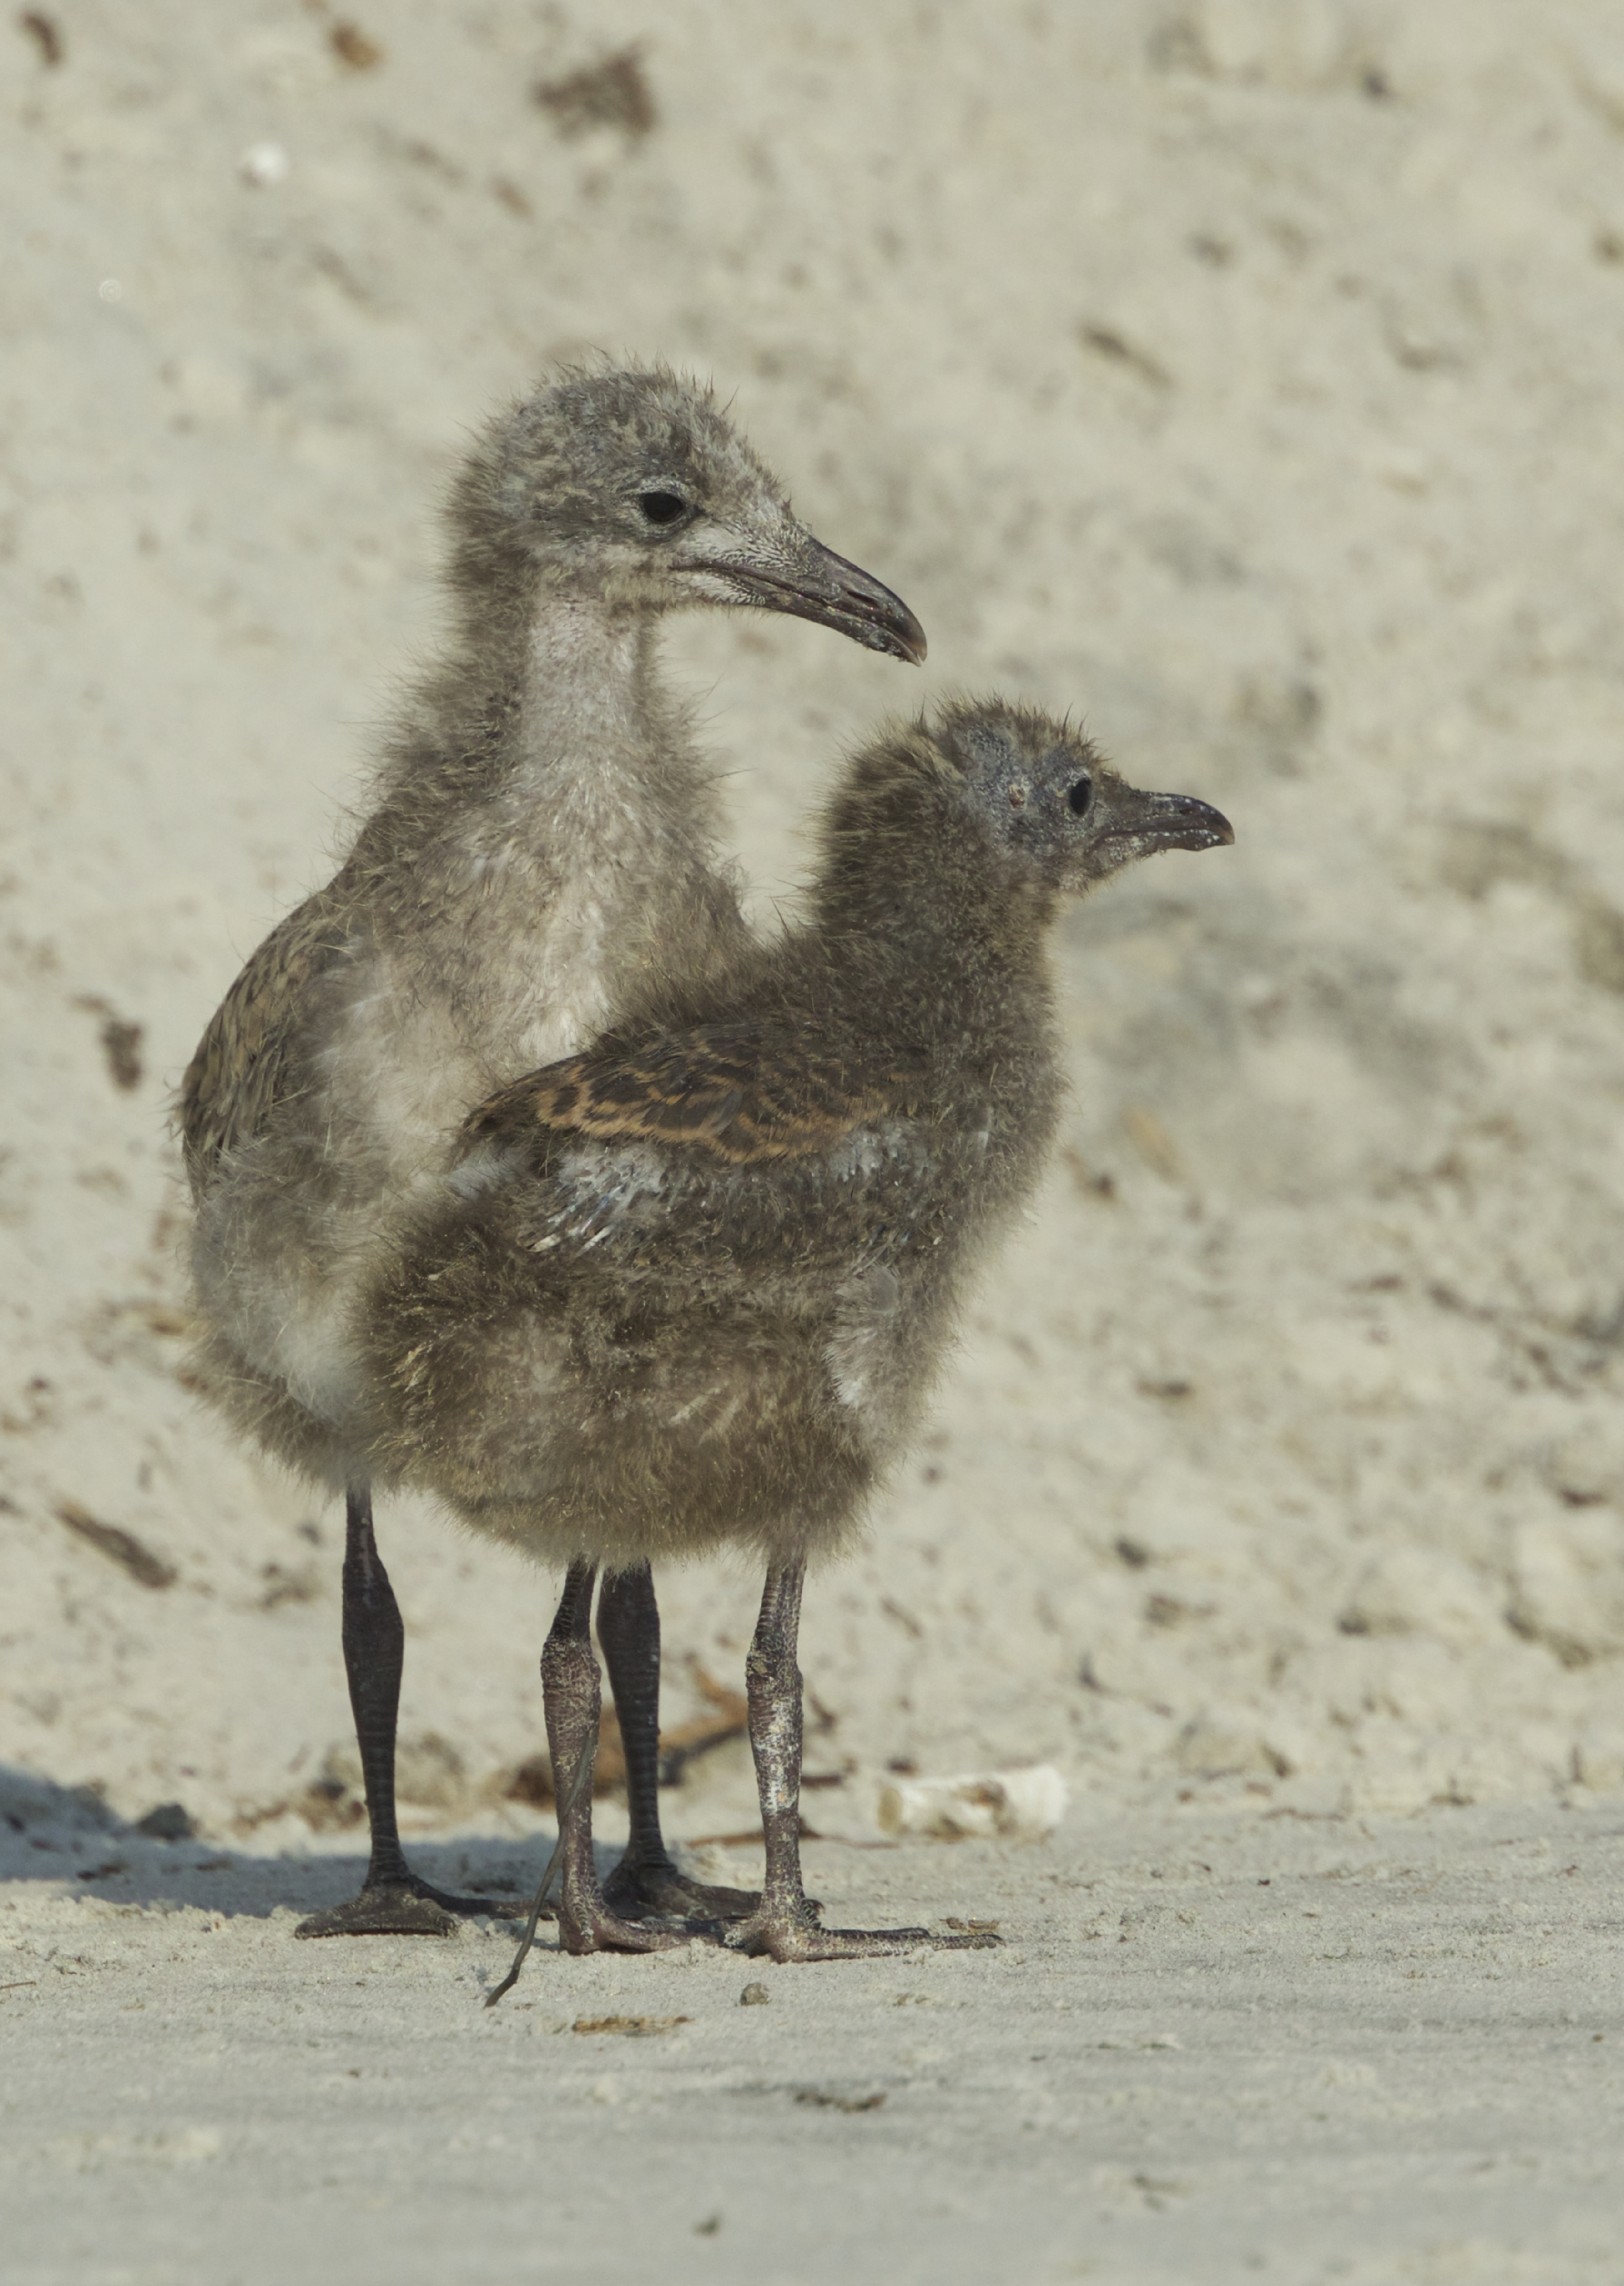 Where is Mom?..I am getting too hot! Young chicks cannot regulate their body heat.